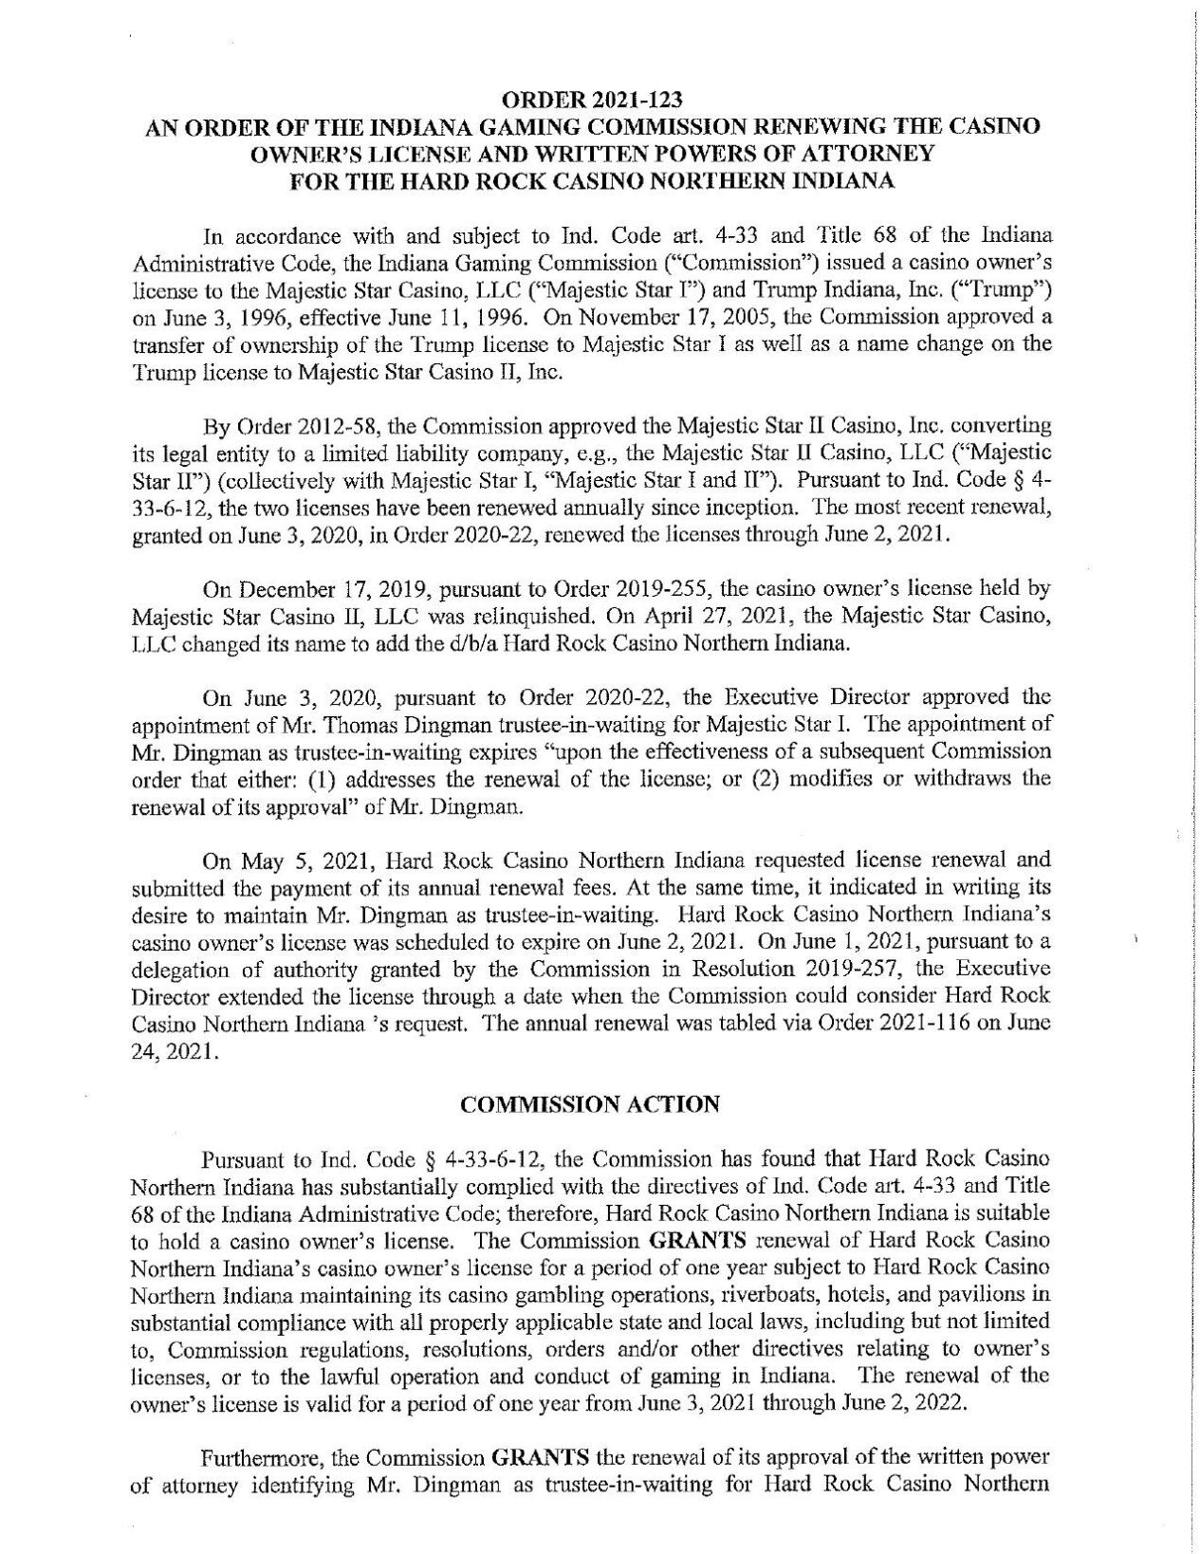 Hard Rock Casino license renewal order of the Indiana Gaming Commission